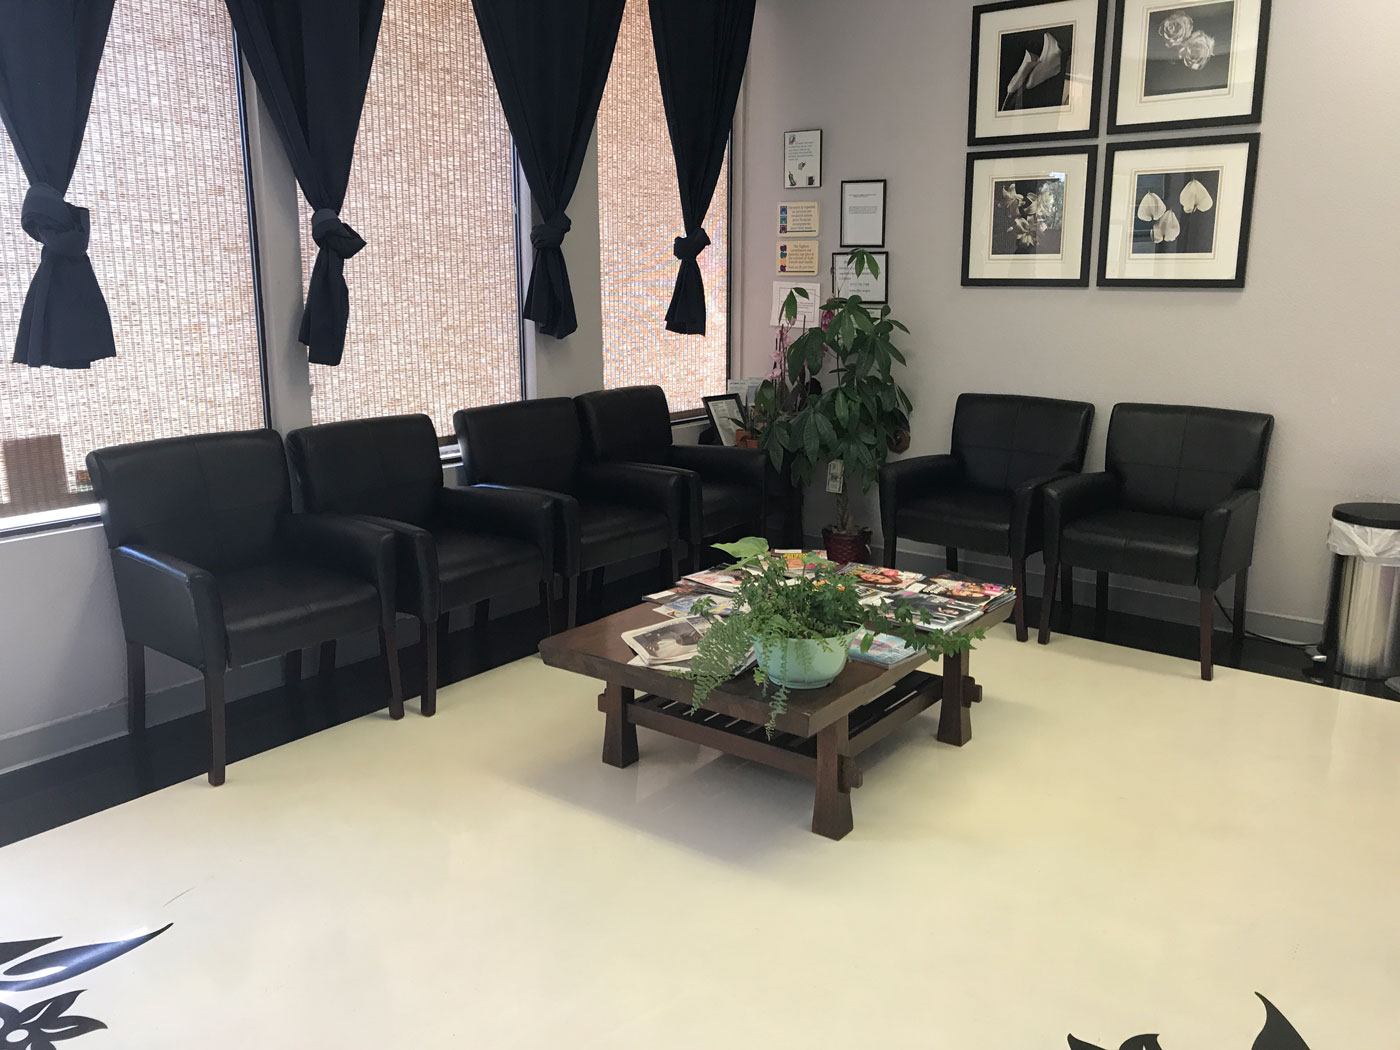 Room4 milpitas cosmetic dentist